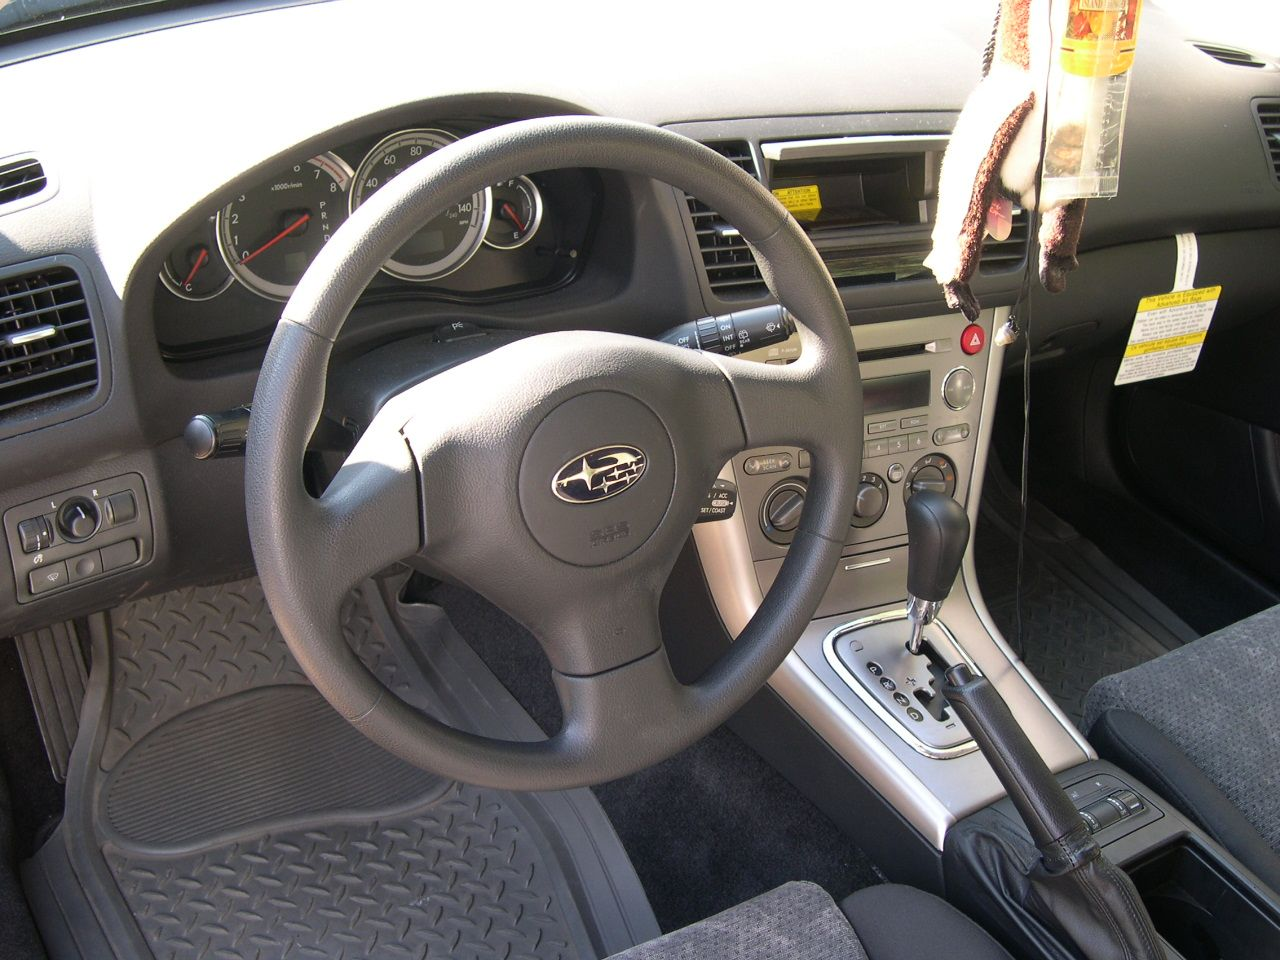 SUBARU OUTBACK 2.5 AT interior